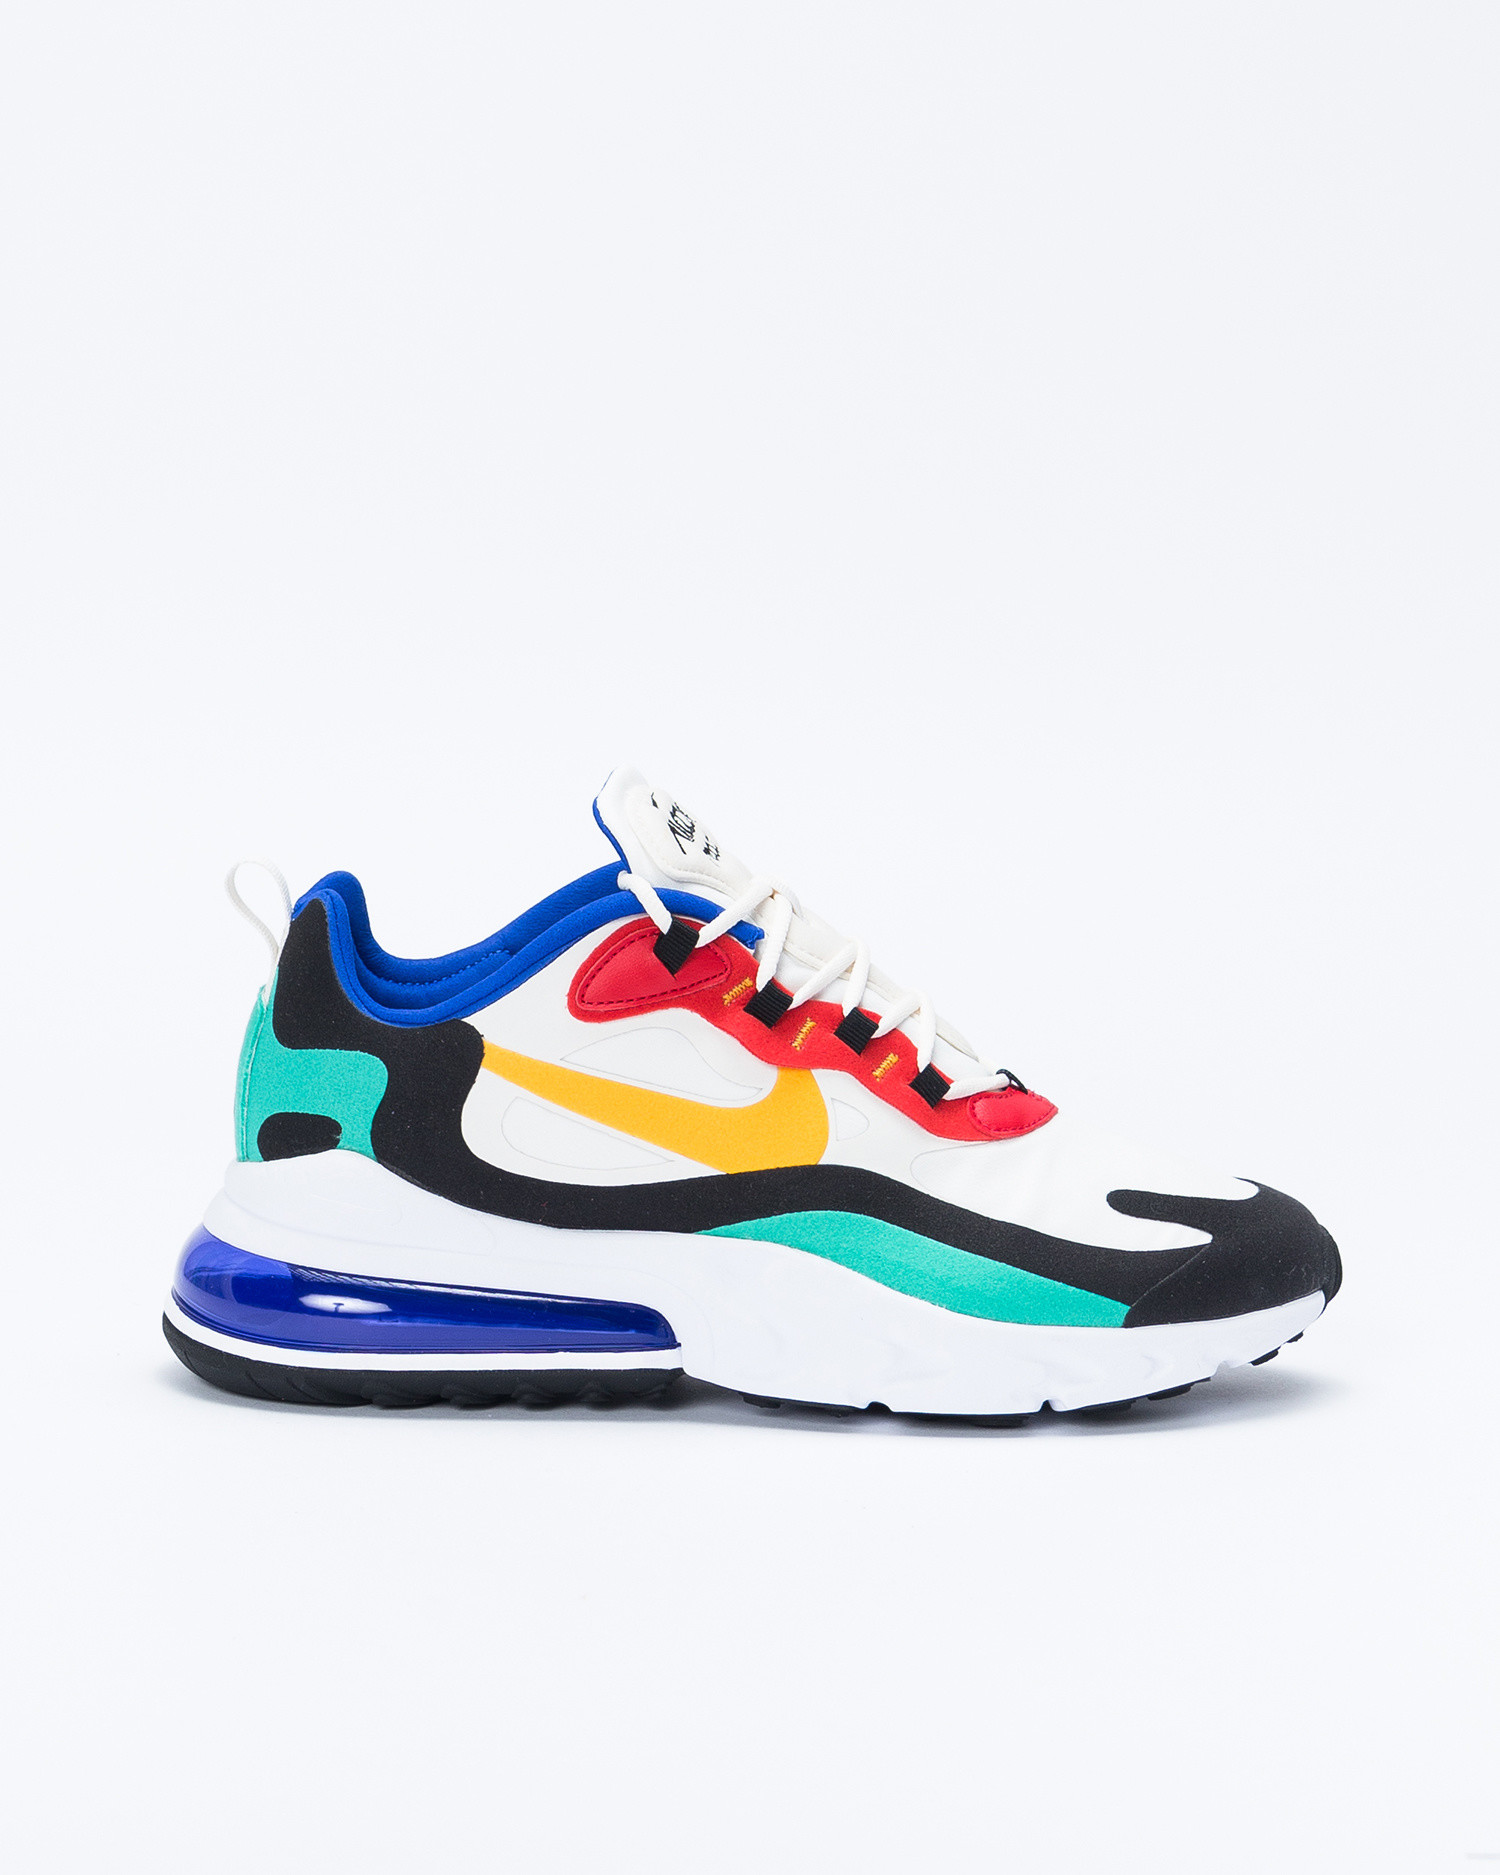 best loved 1de5d d9dfc Nike Air max 270 react Phantom/university gold-university red